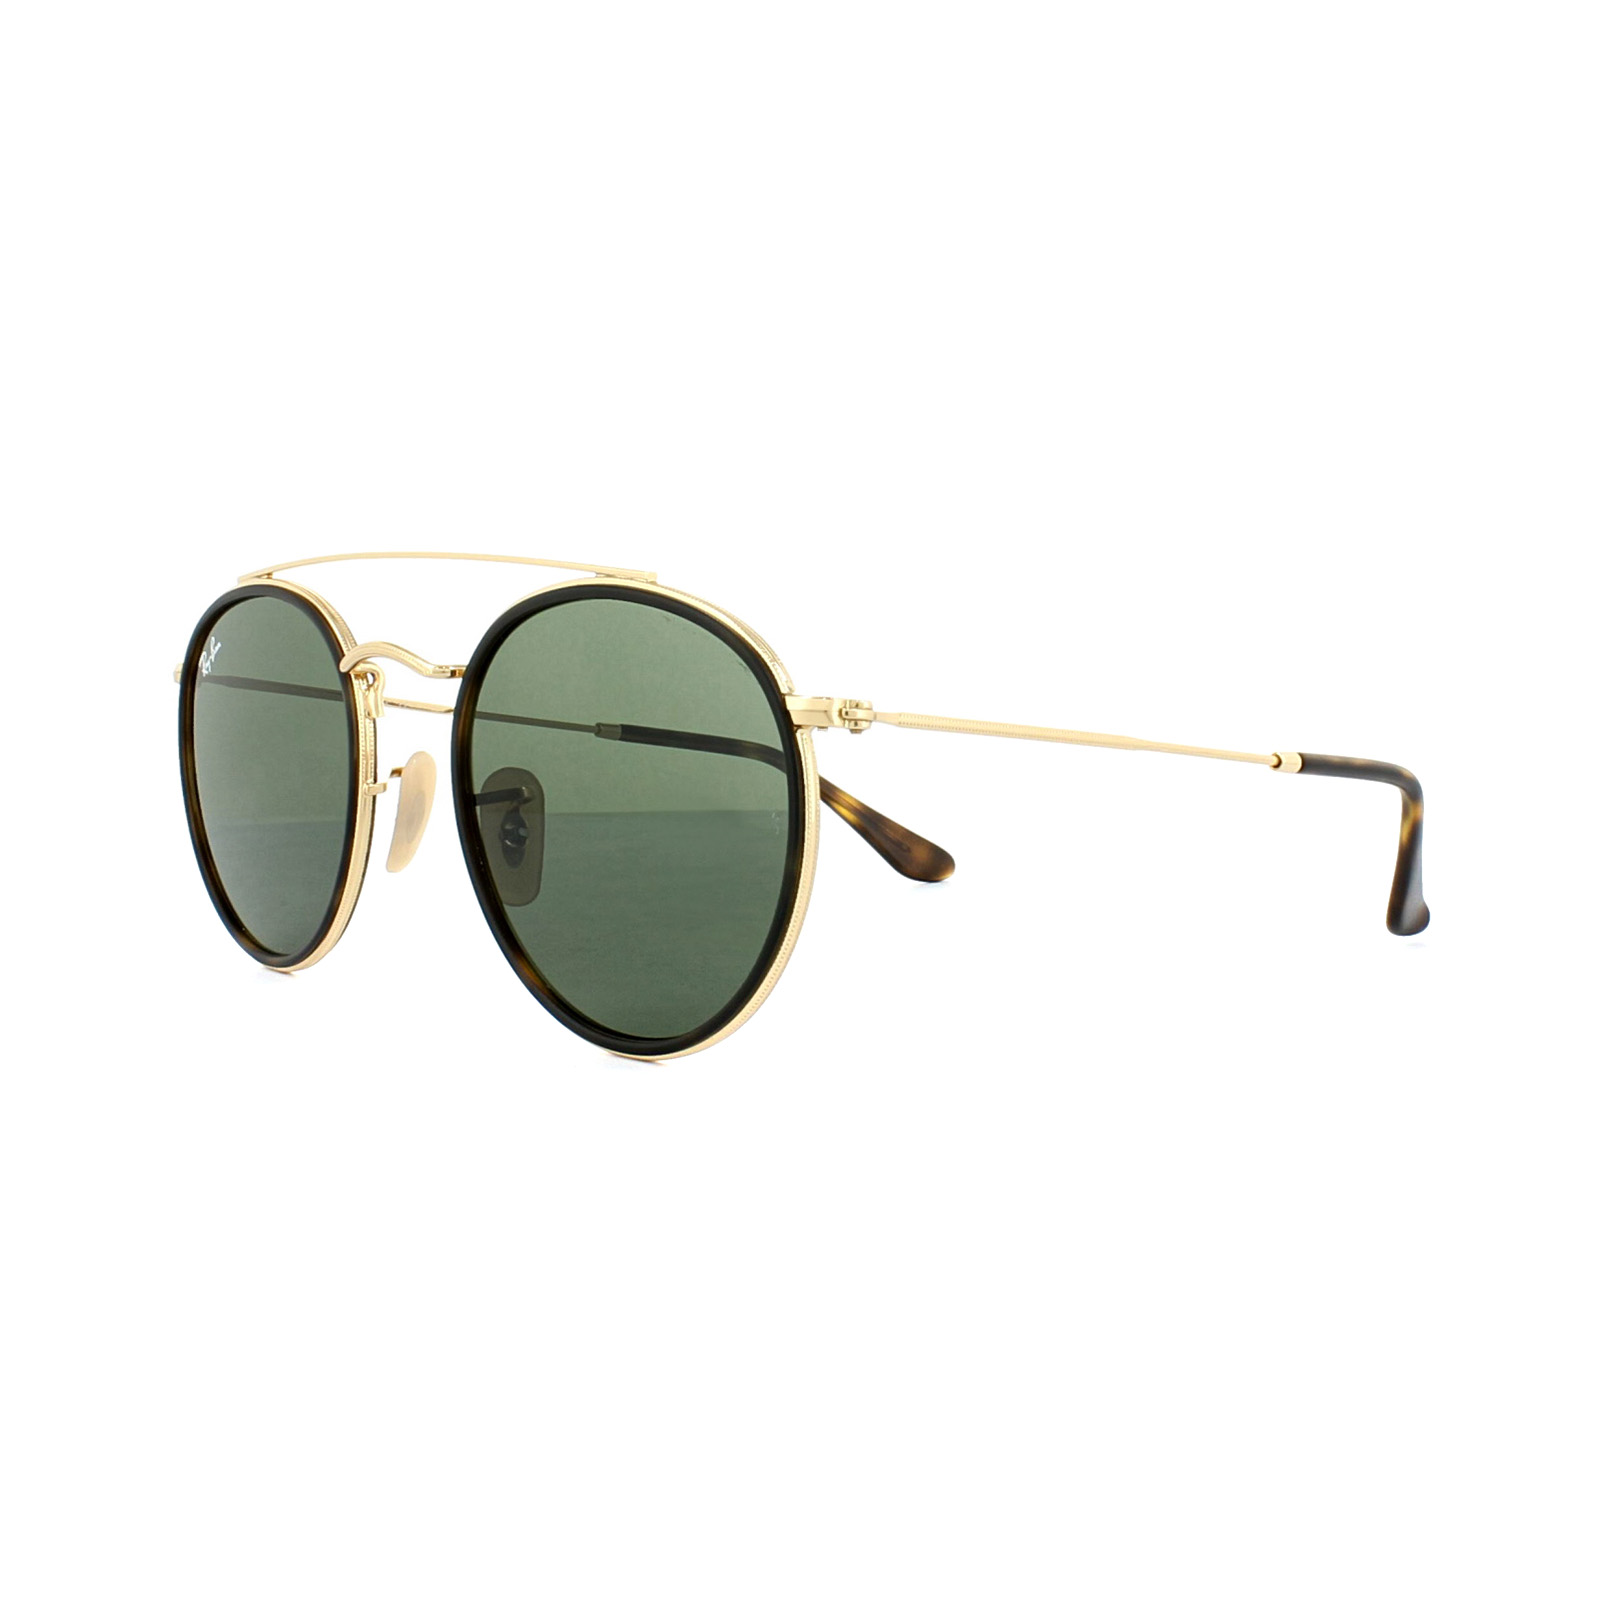 Ray ban Sunglasses Occhiali sole Double Bridge RB 4279 71073 Sonnenbrille